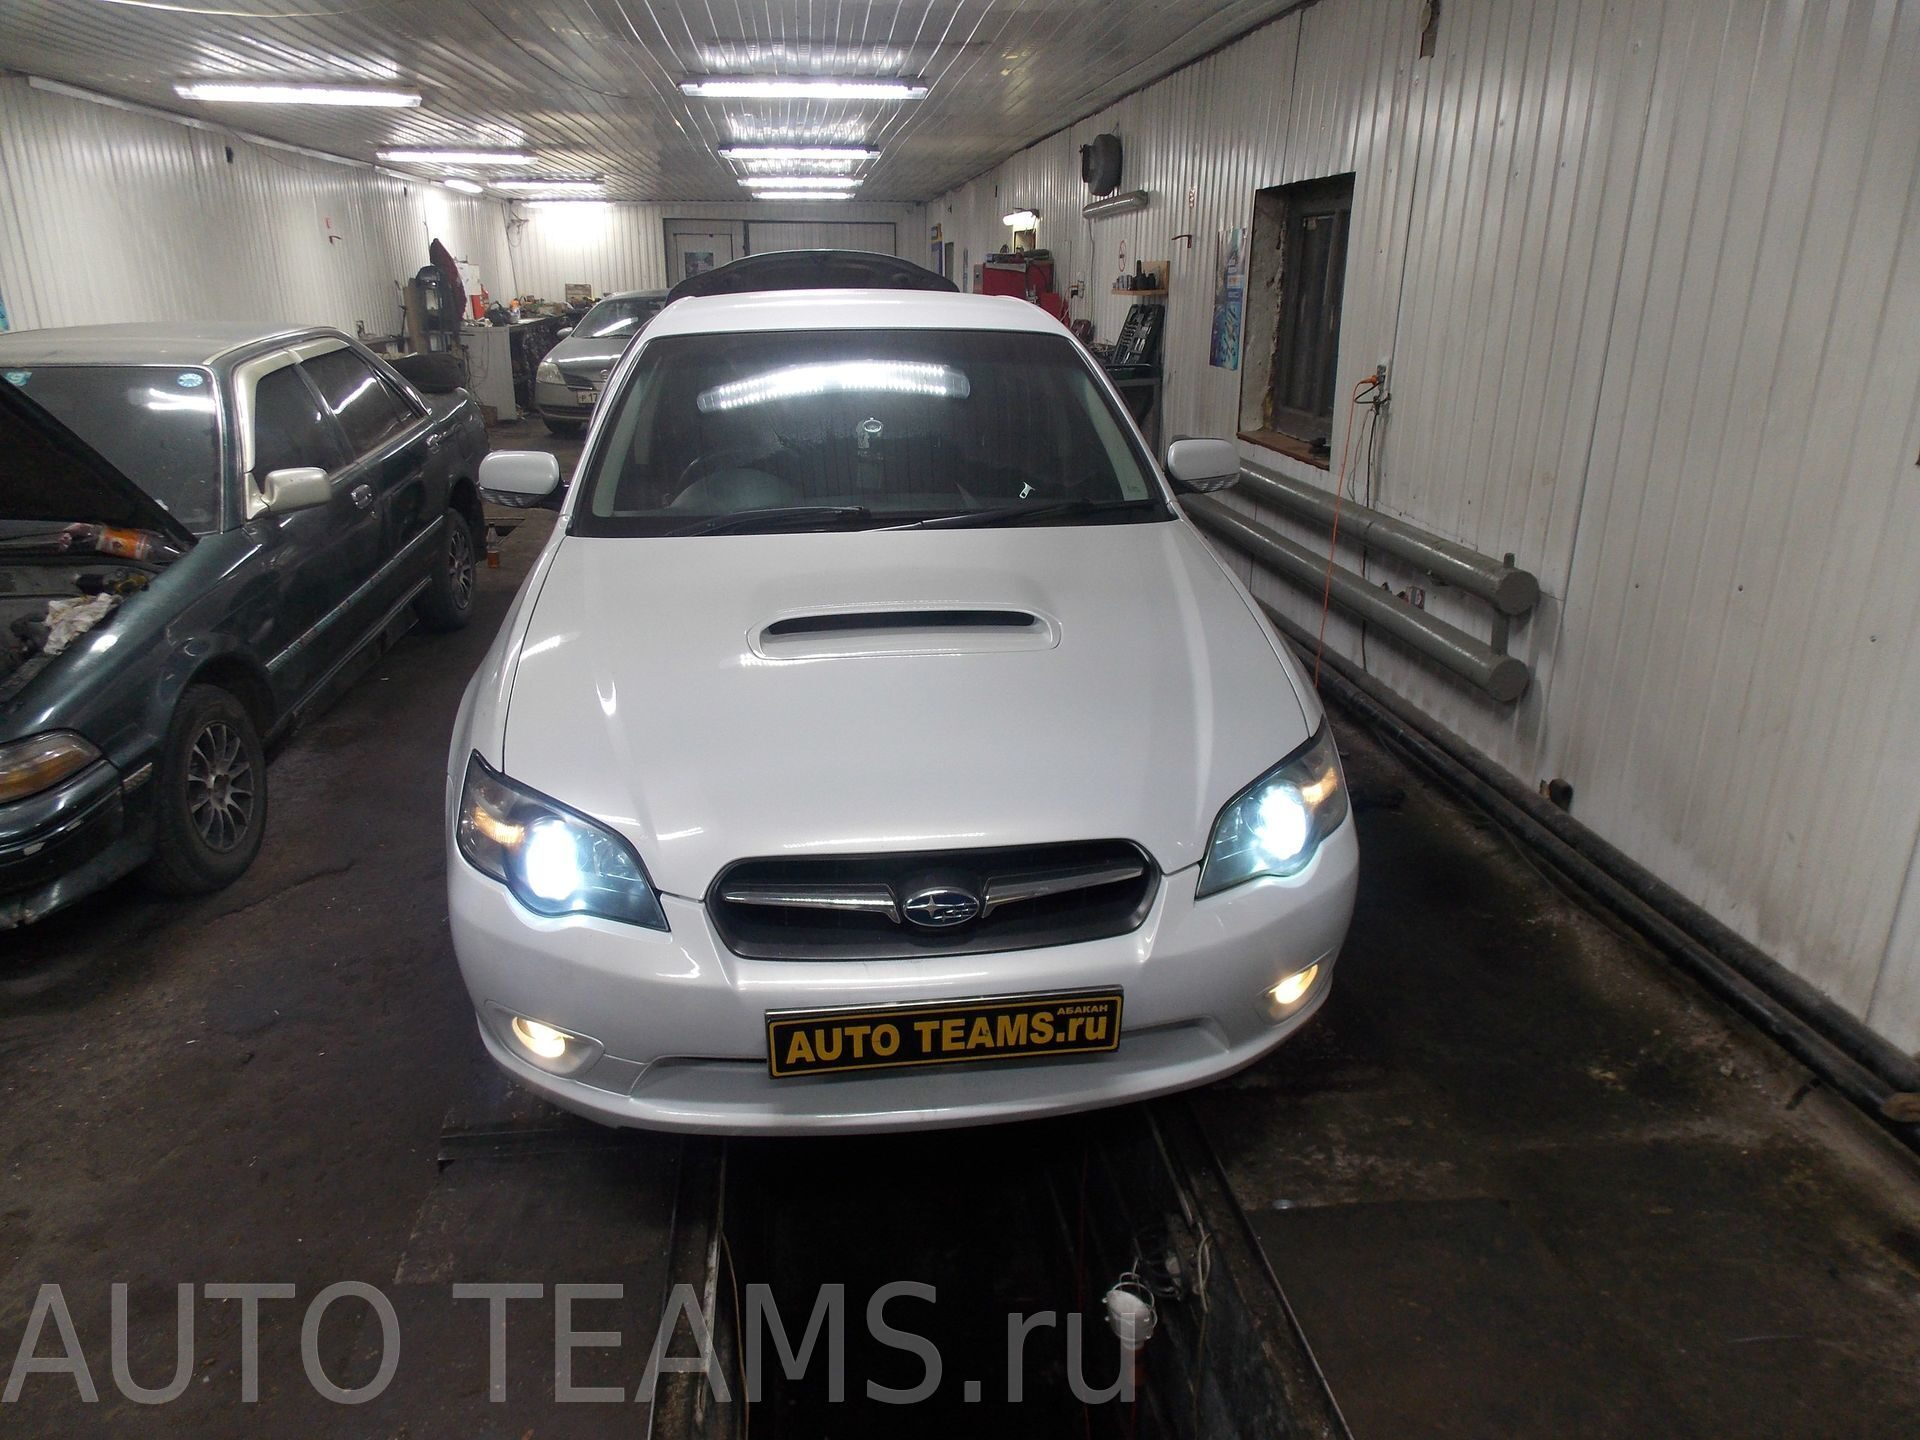 Subaru Legacy 2.0 turbo 2004